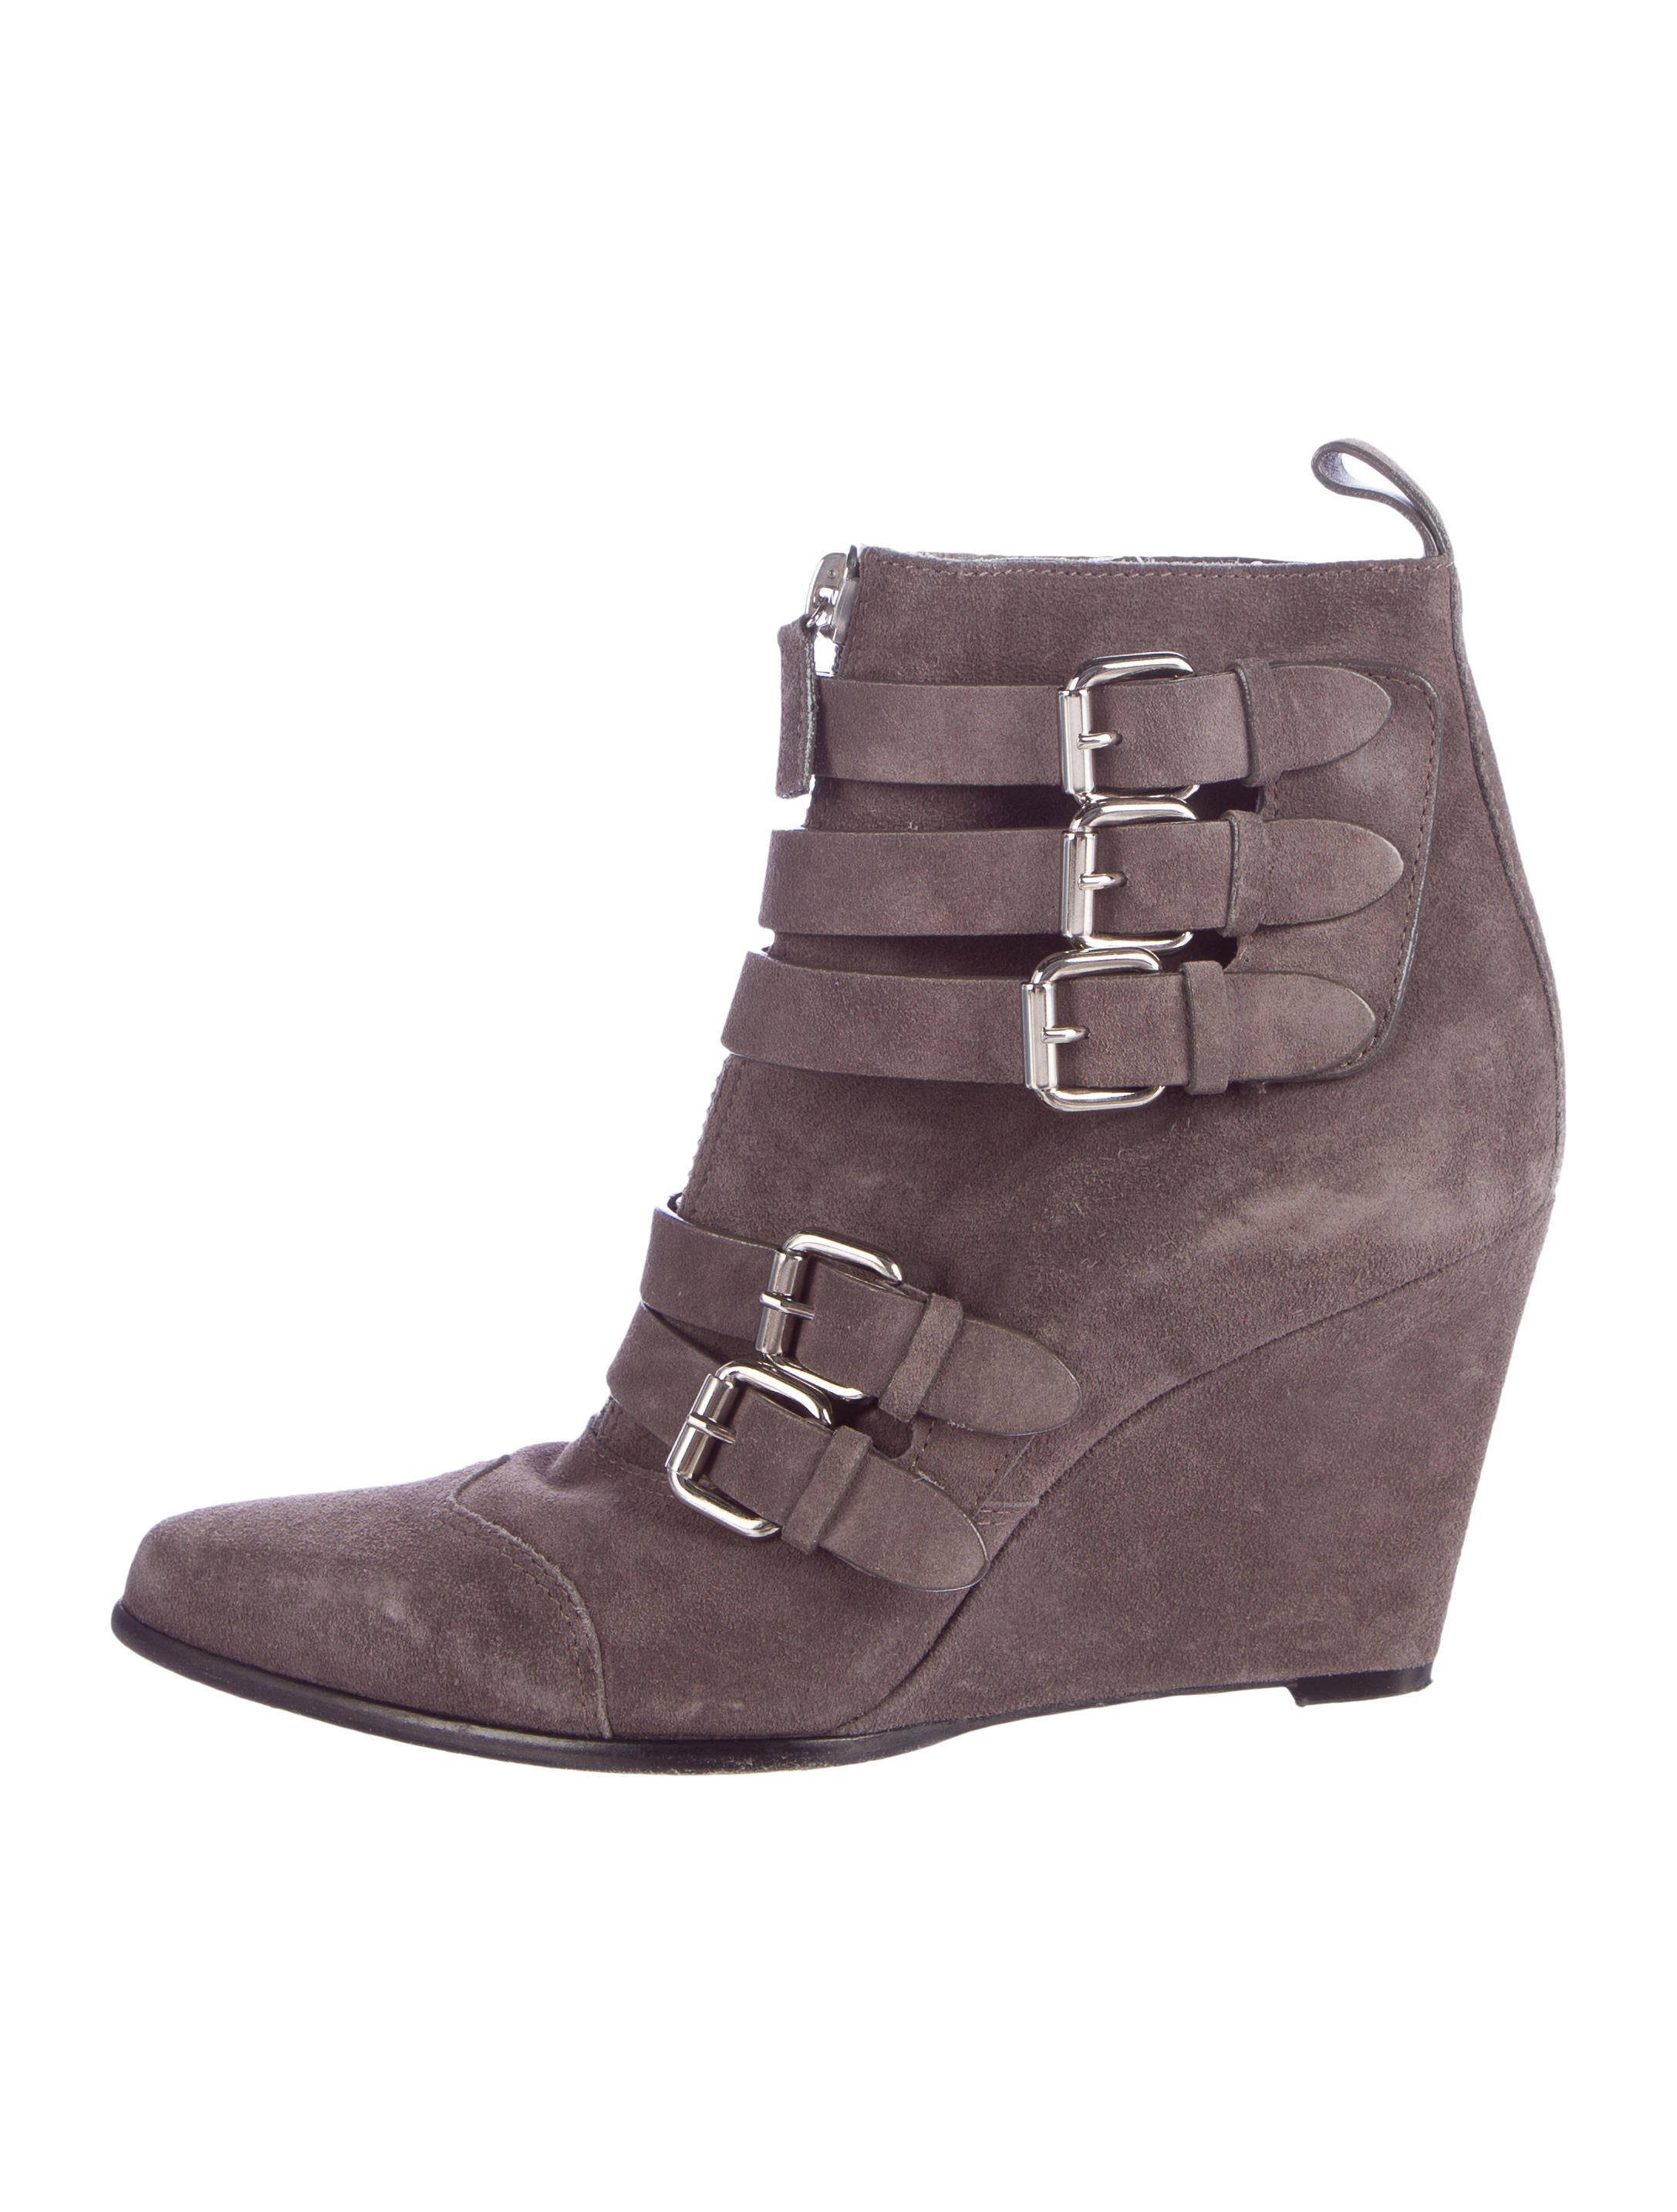 simmons suede wedge ankle boots shoes tab20956